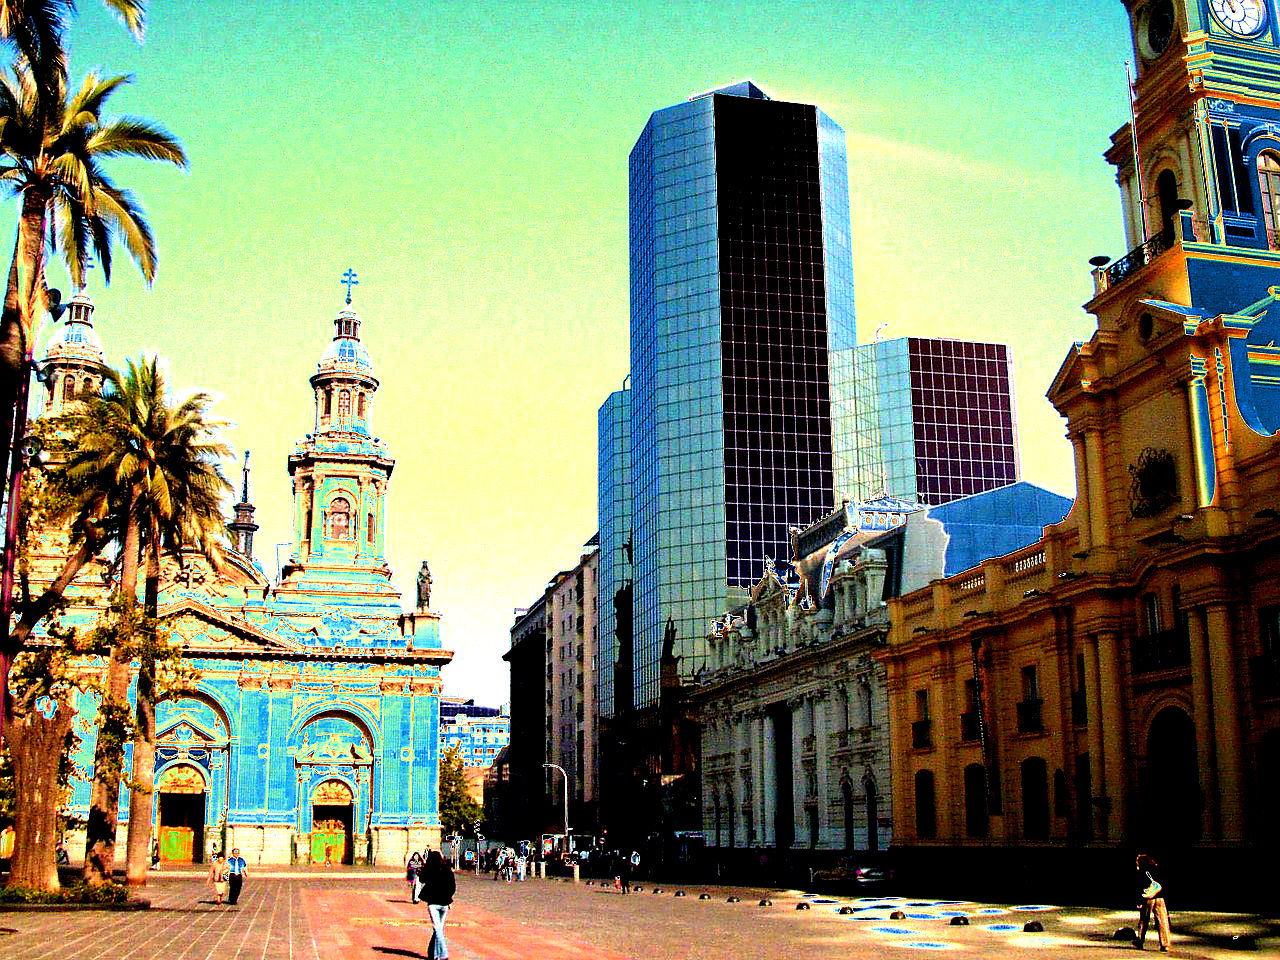 Over 5,000 Merchants Are Now Accepting Crypto Payments in Bitcoin (BTC), Ethereum (ETH) and Stellar (XLM) in Chile